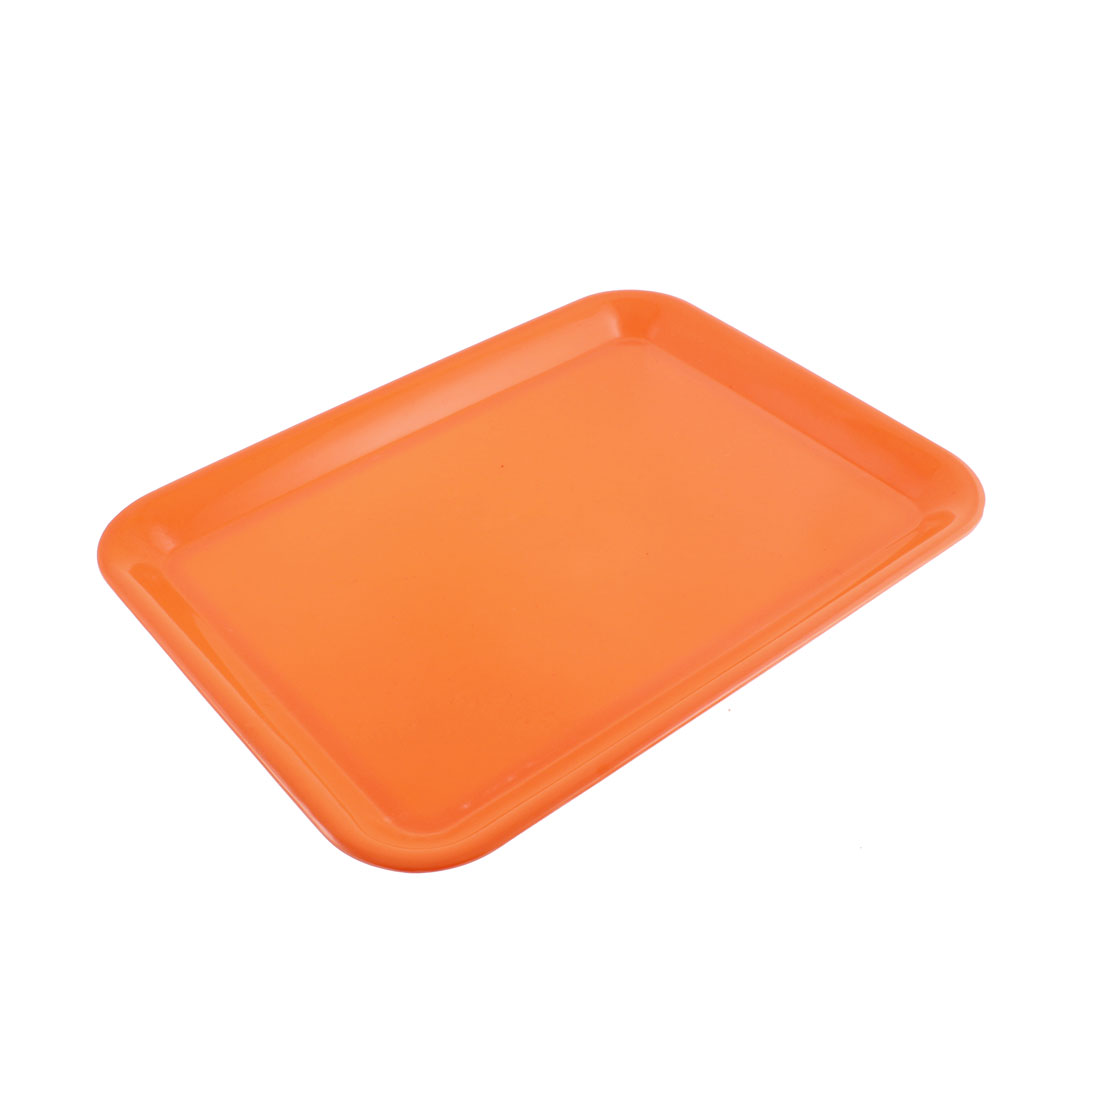 "Restaurant Kitchen Rectangle Shape Food Serving Tray Orange 17"" Length"